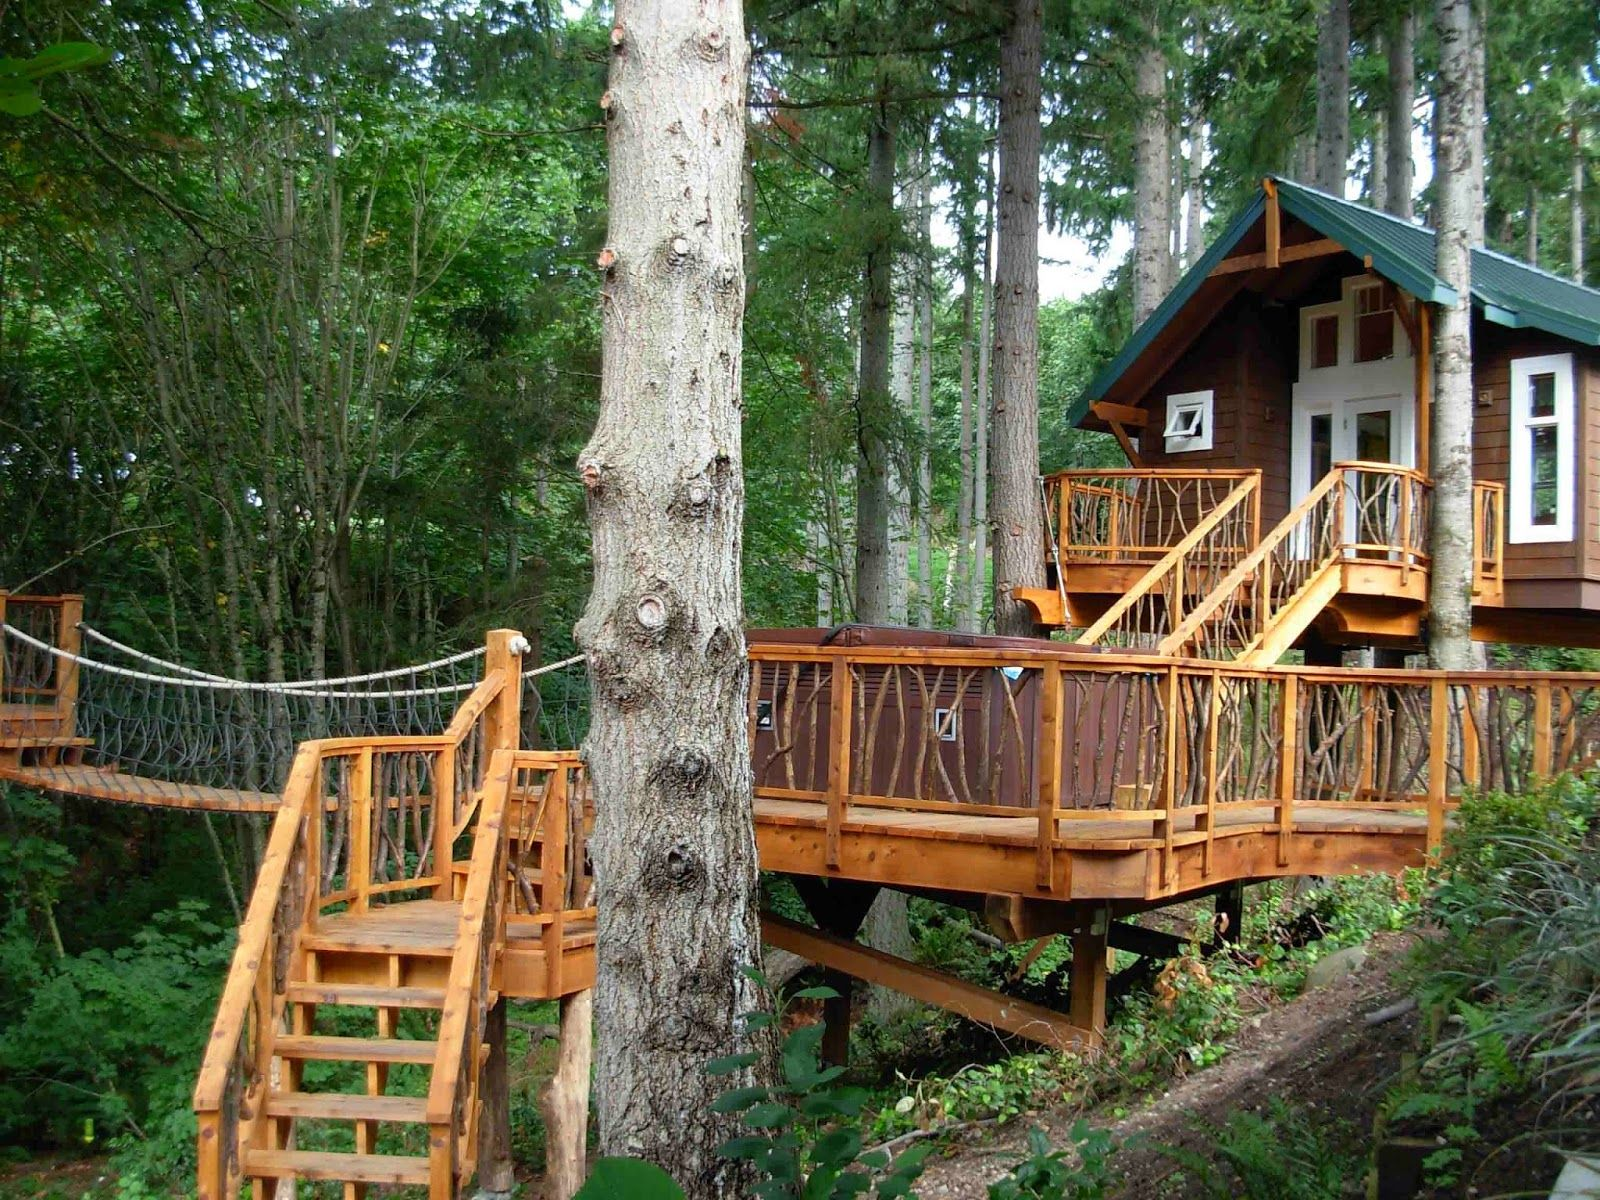 Furniture awesome about treehouse designs free with nice for Free treehouse plans and designs